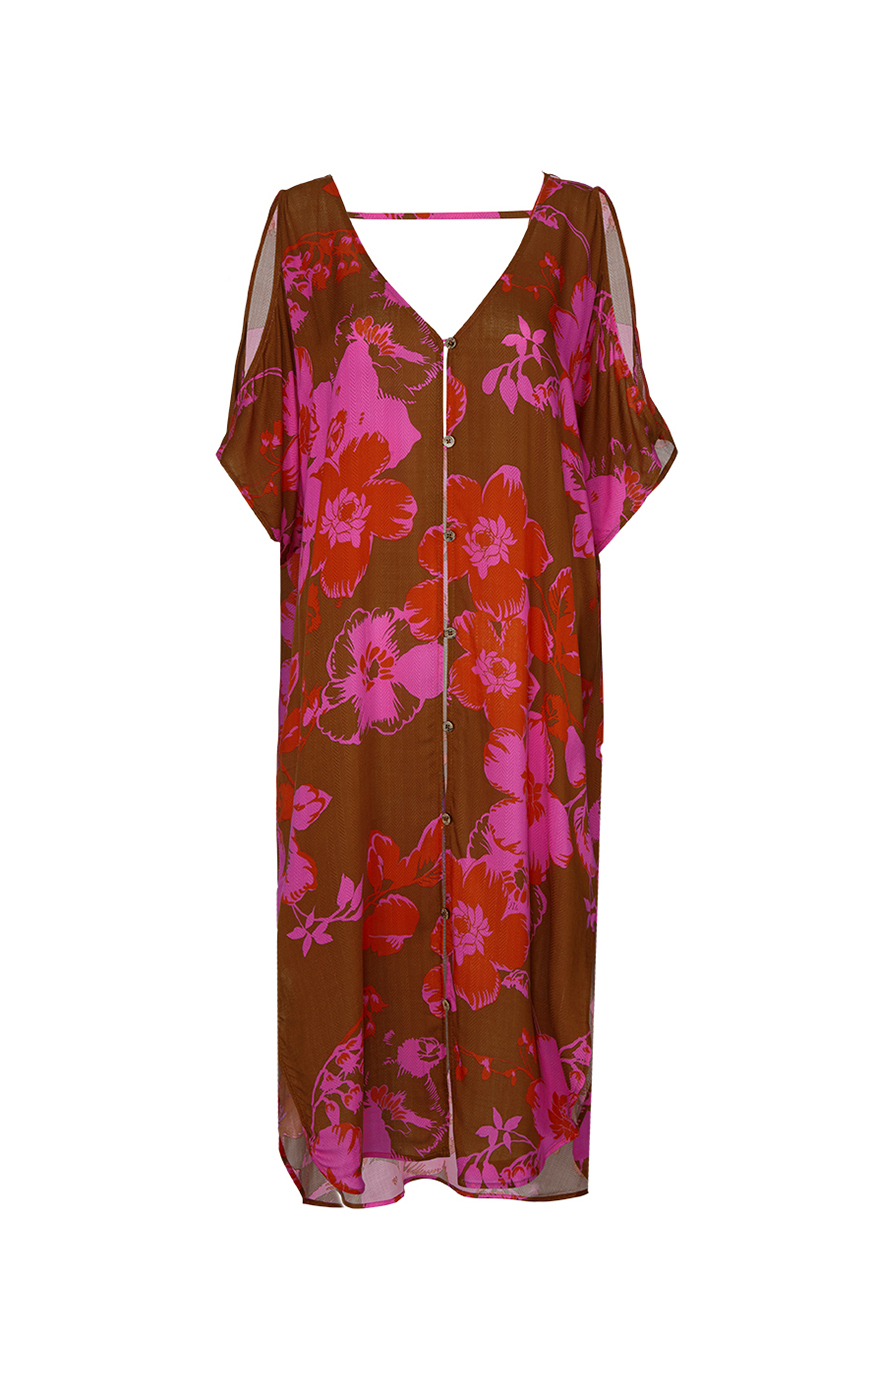 cabi's Tahitian Cover-Up